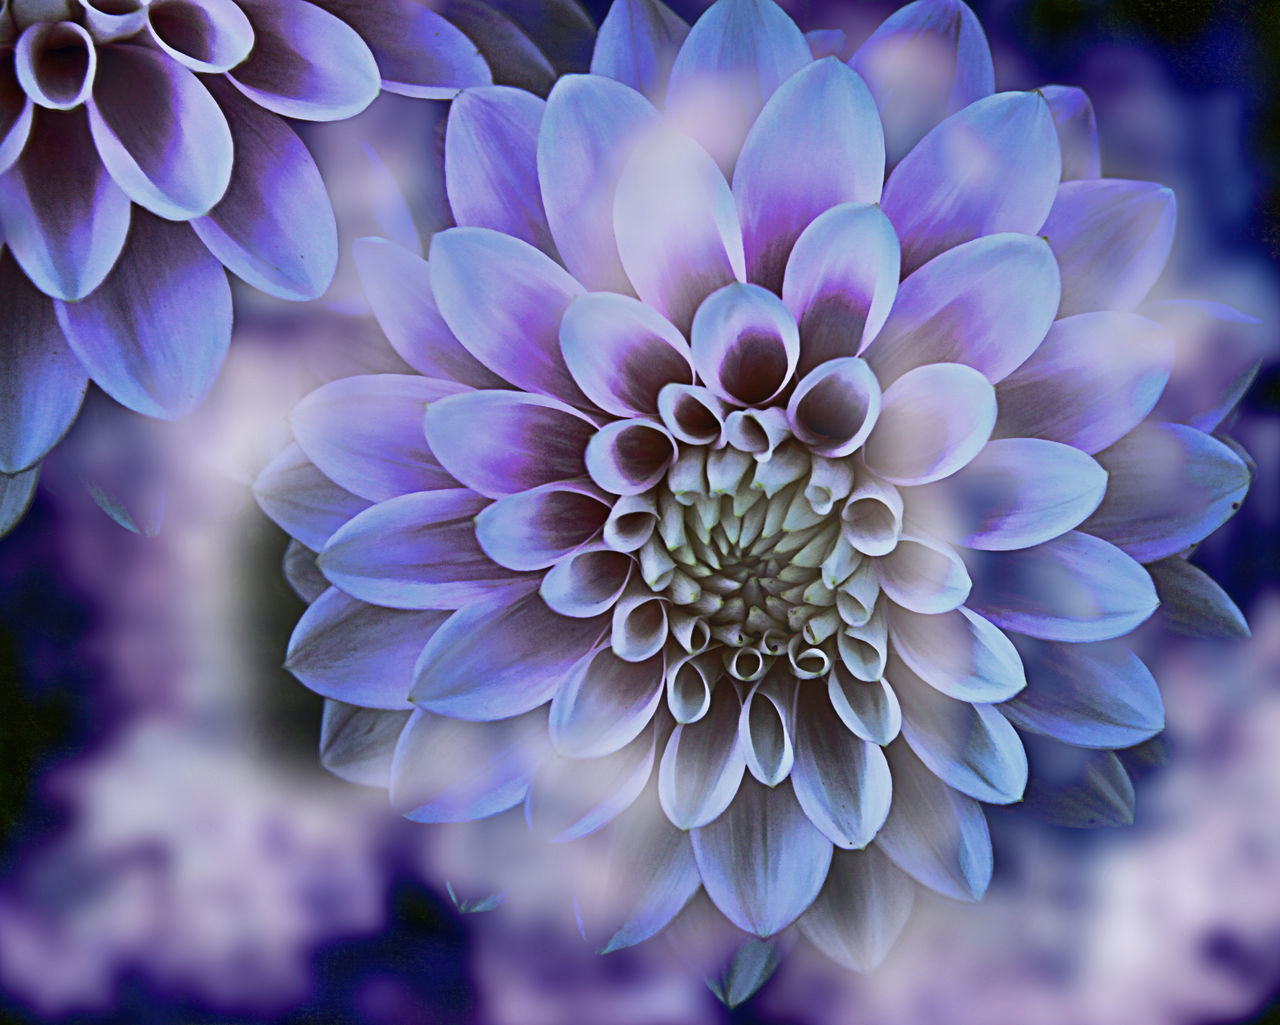 flower, petal, fragility, flower head, beauty in nature, nature, freshness, growth, purple, focus on foreground, close-up, plant, outdoors, day, blooming, no people